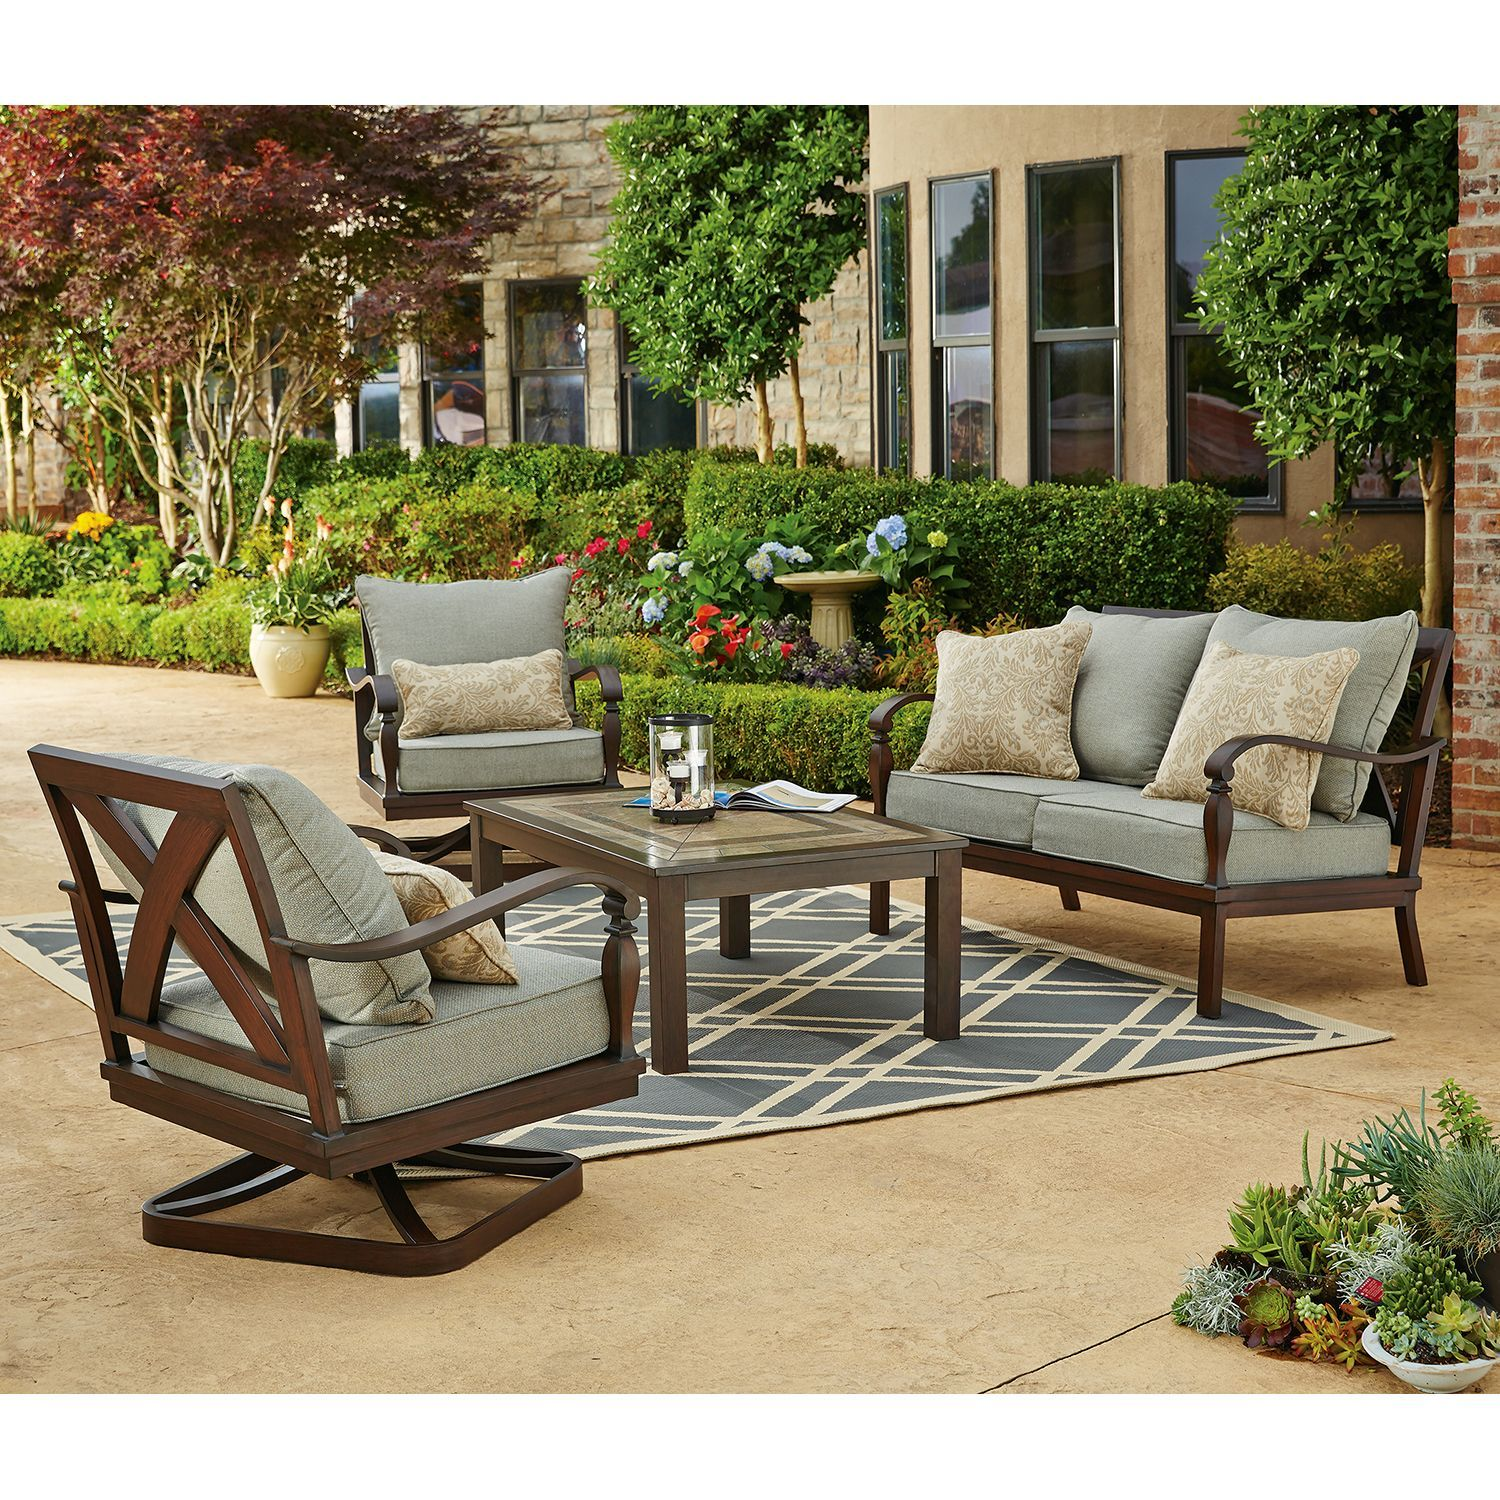 Brittany 4 Piece Conversation Set Inspirations Outdoor